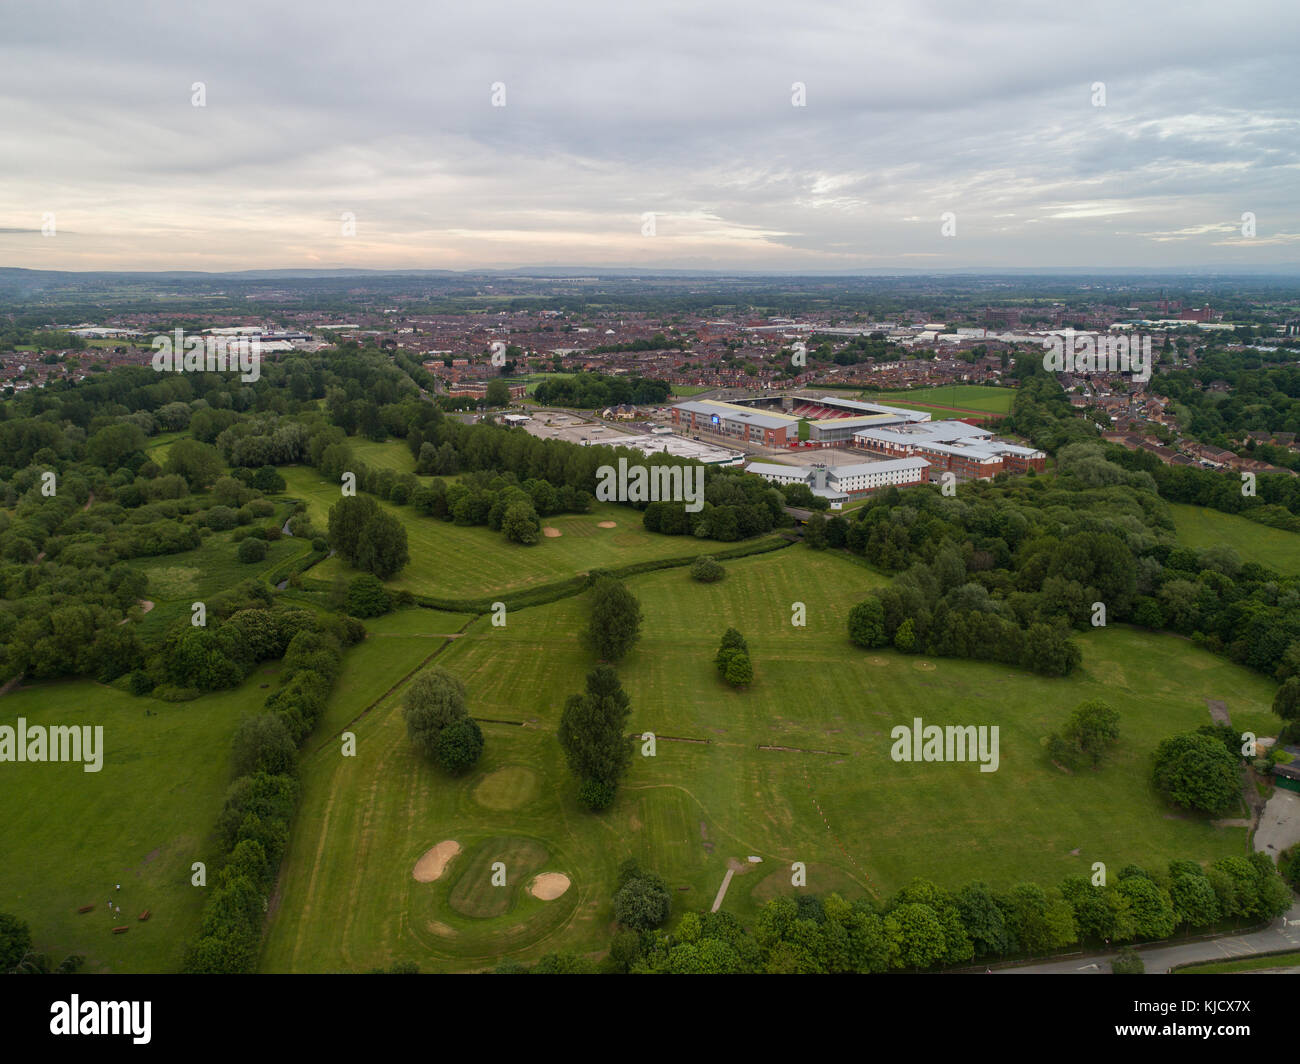 Aerial View Of Leigh Sports Village With Morrisons Supermarket And Holiday Inn Express in Leigh, Greater Manchester, - Stock Image